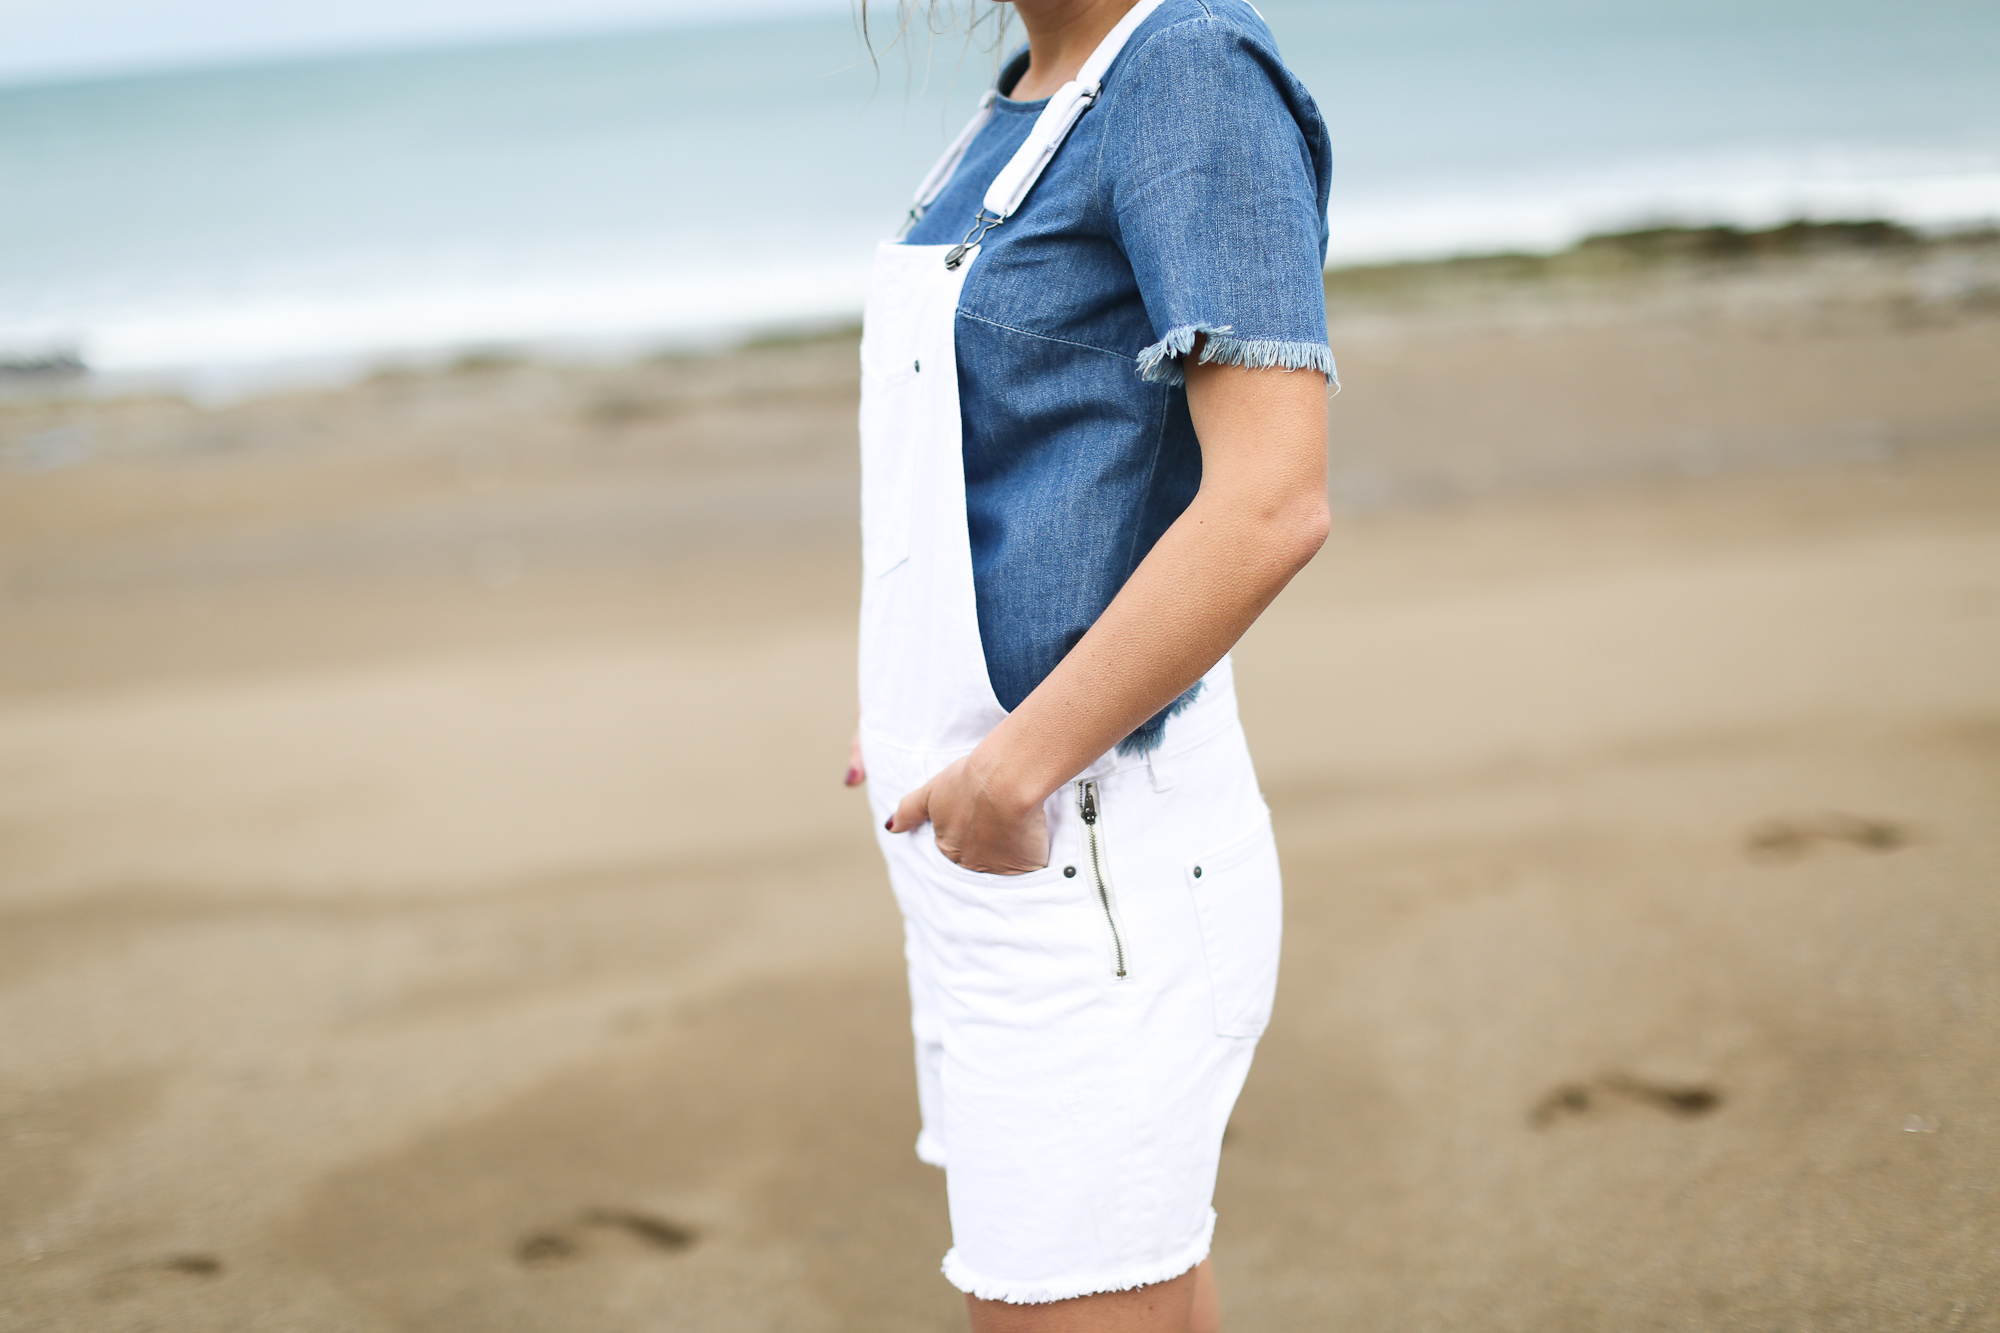 Clochet_streetstyle_blanco_denim_gallery_outfit_onlyforfans-8